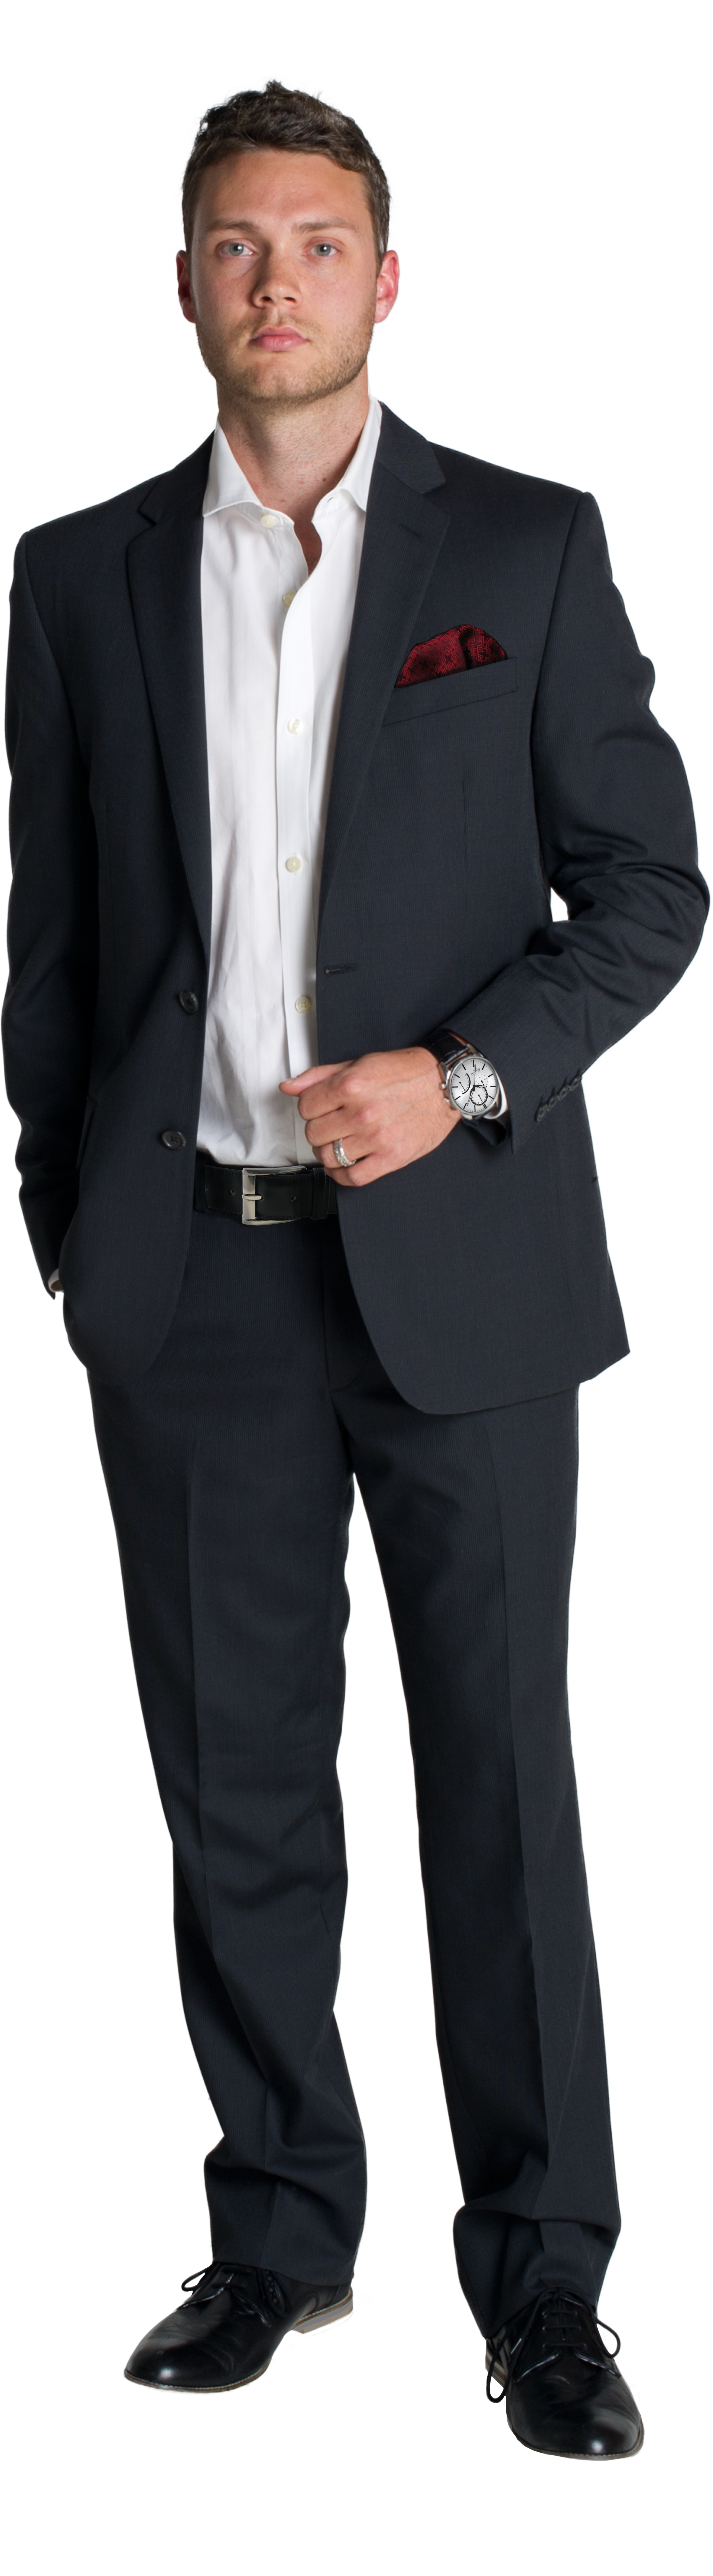 Guy in a suit. Man png image transparent stock